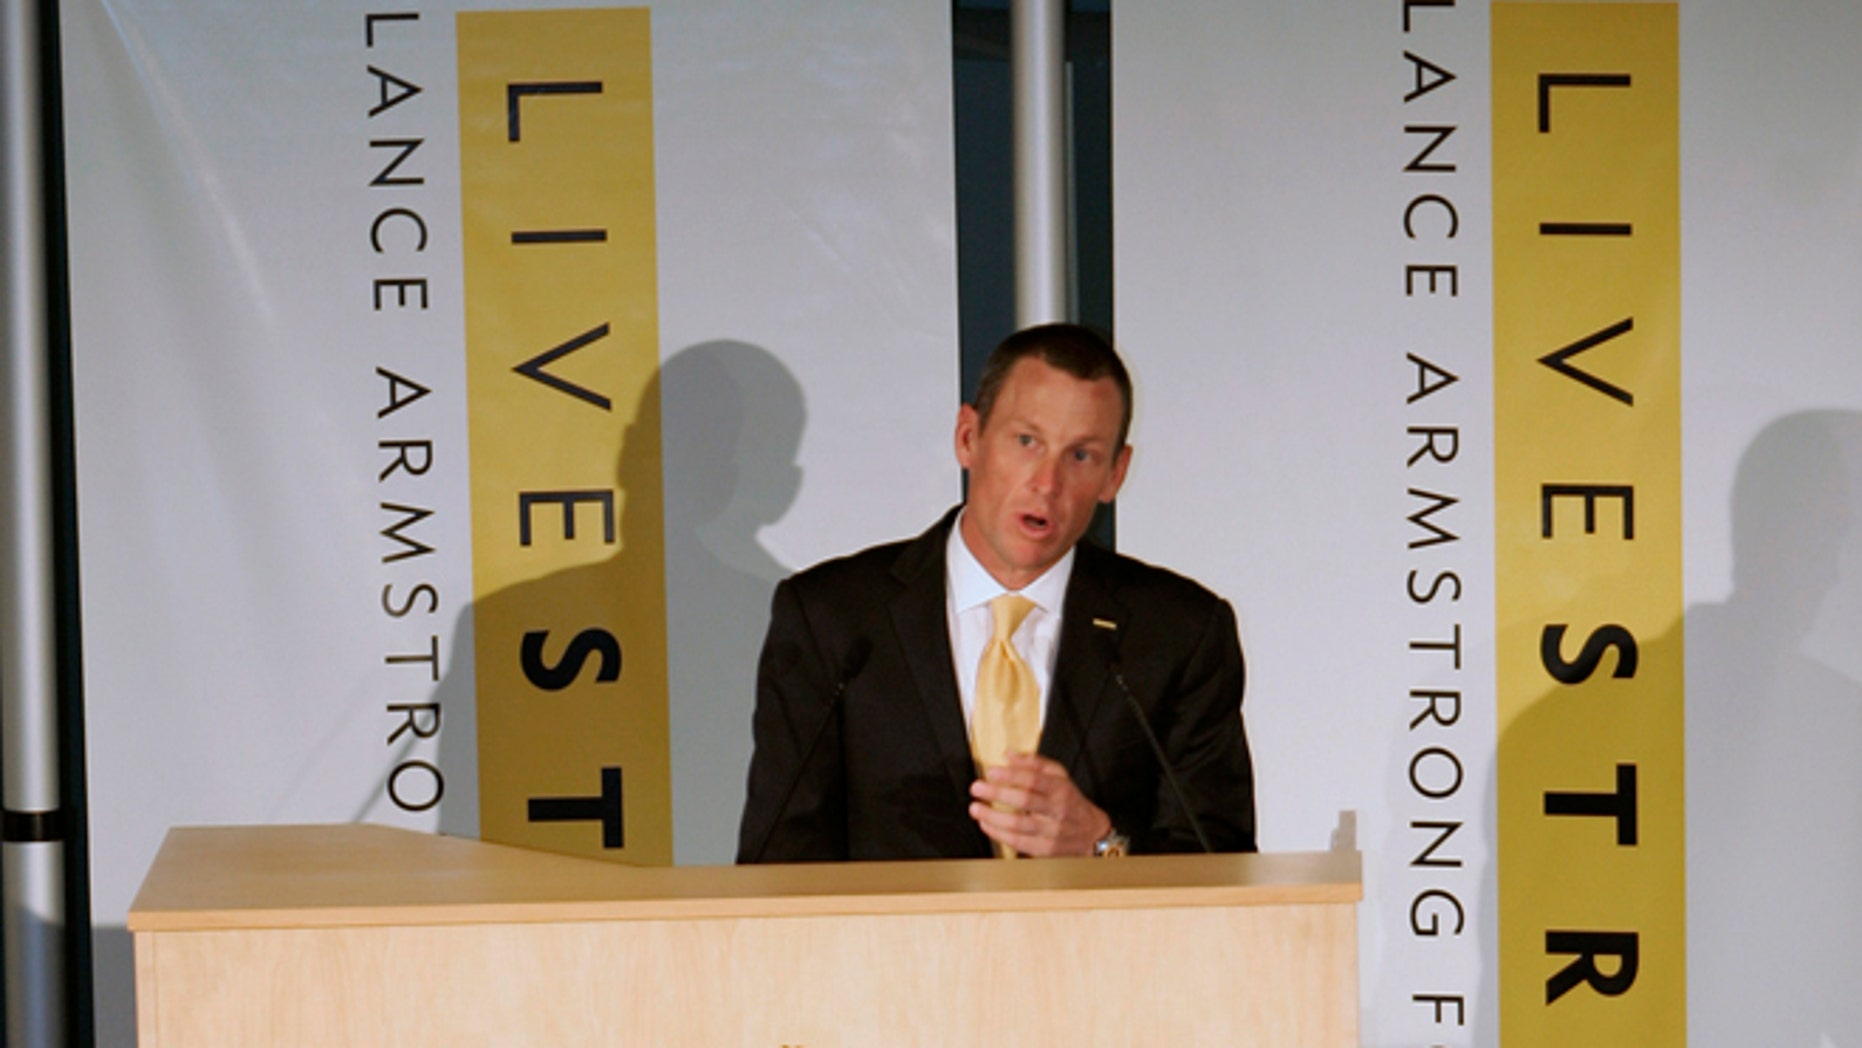 Jan. 19, 2009: This file photo shows Lance Armstrong speaking during the launch of the Livestrong Global Cancer campaign  Royal Adelaide Hospital in Adelaide, Australia.